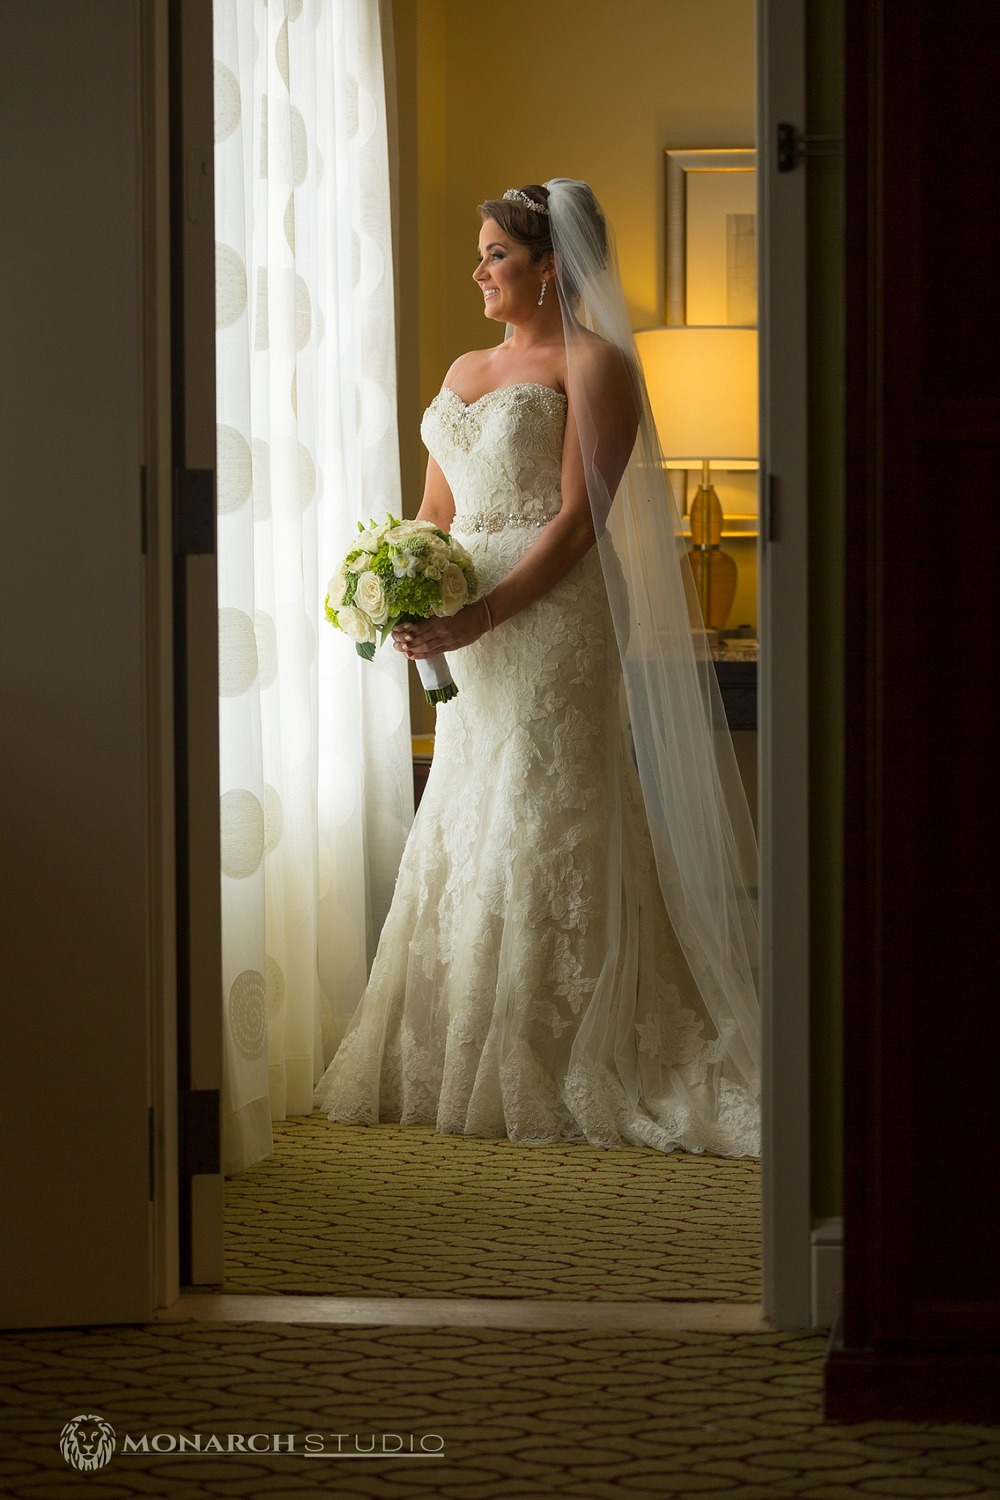 Wedding-Photographer-St-Augustine-Florida_0013.jpg